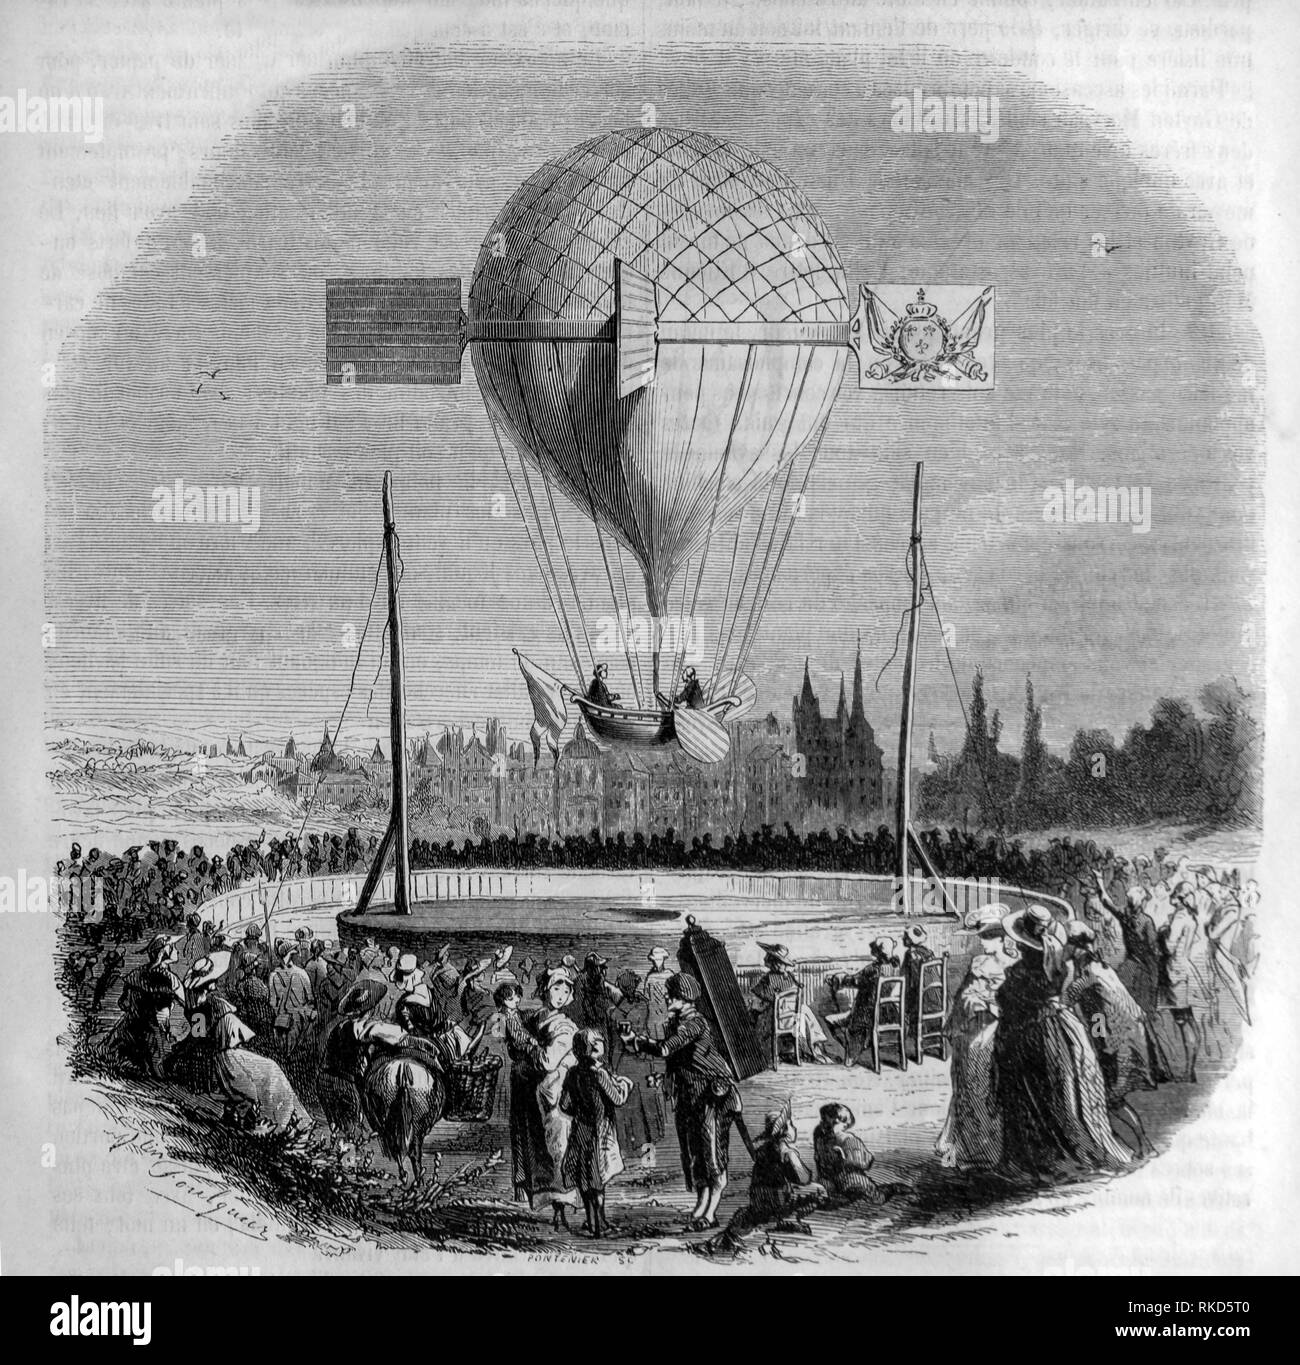 France. Aerostatic experience at Dijon on the 25th of april 1784. The balloon was monted by the Abbey Berteau and Mr. Morvaux. - Stock Image